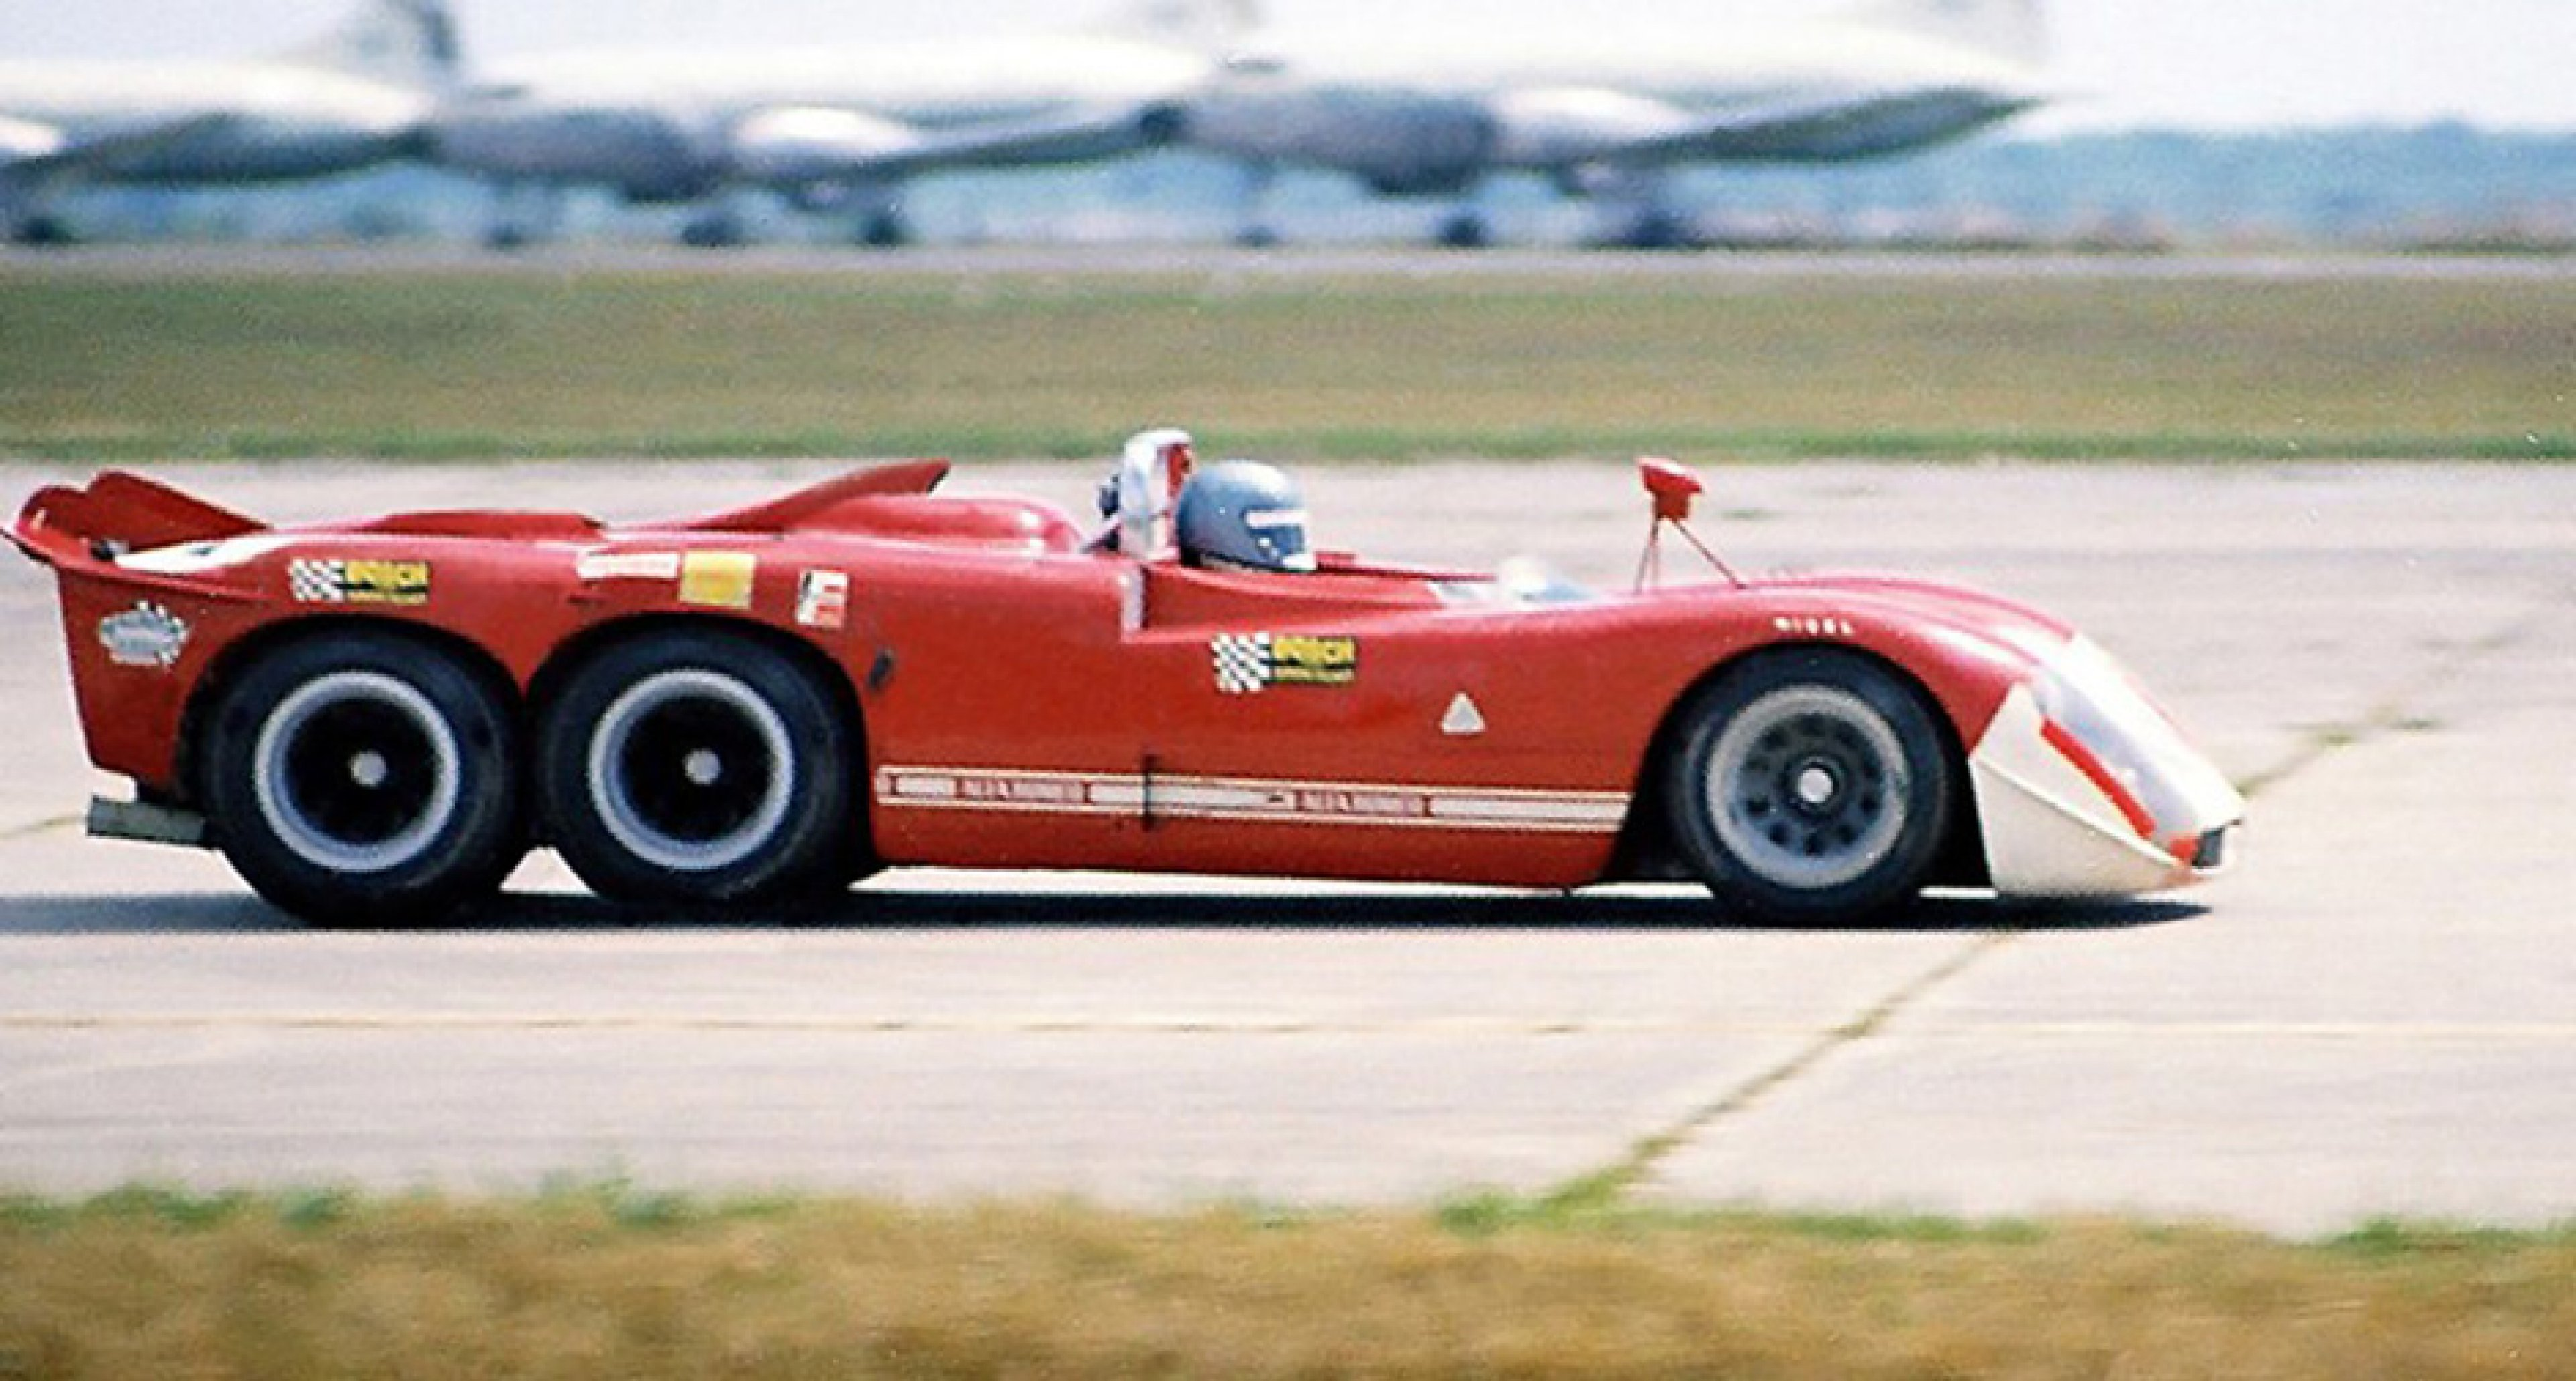 The mythical Alfa Romeo T33/6/12 created as an April Fools prank